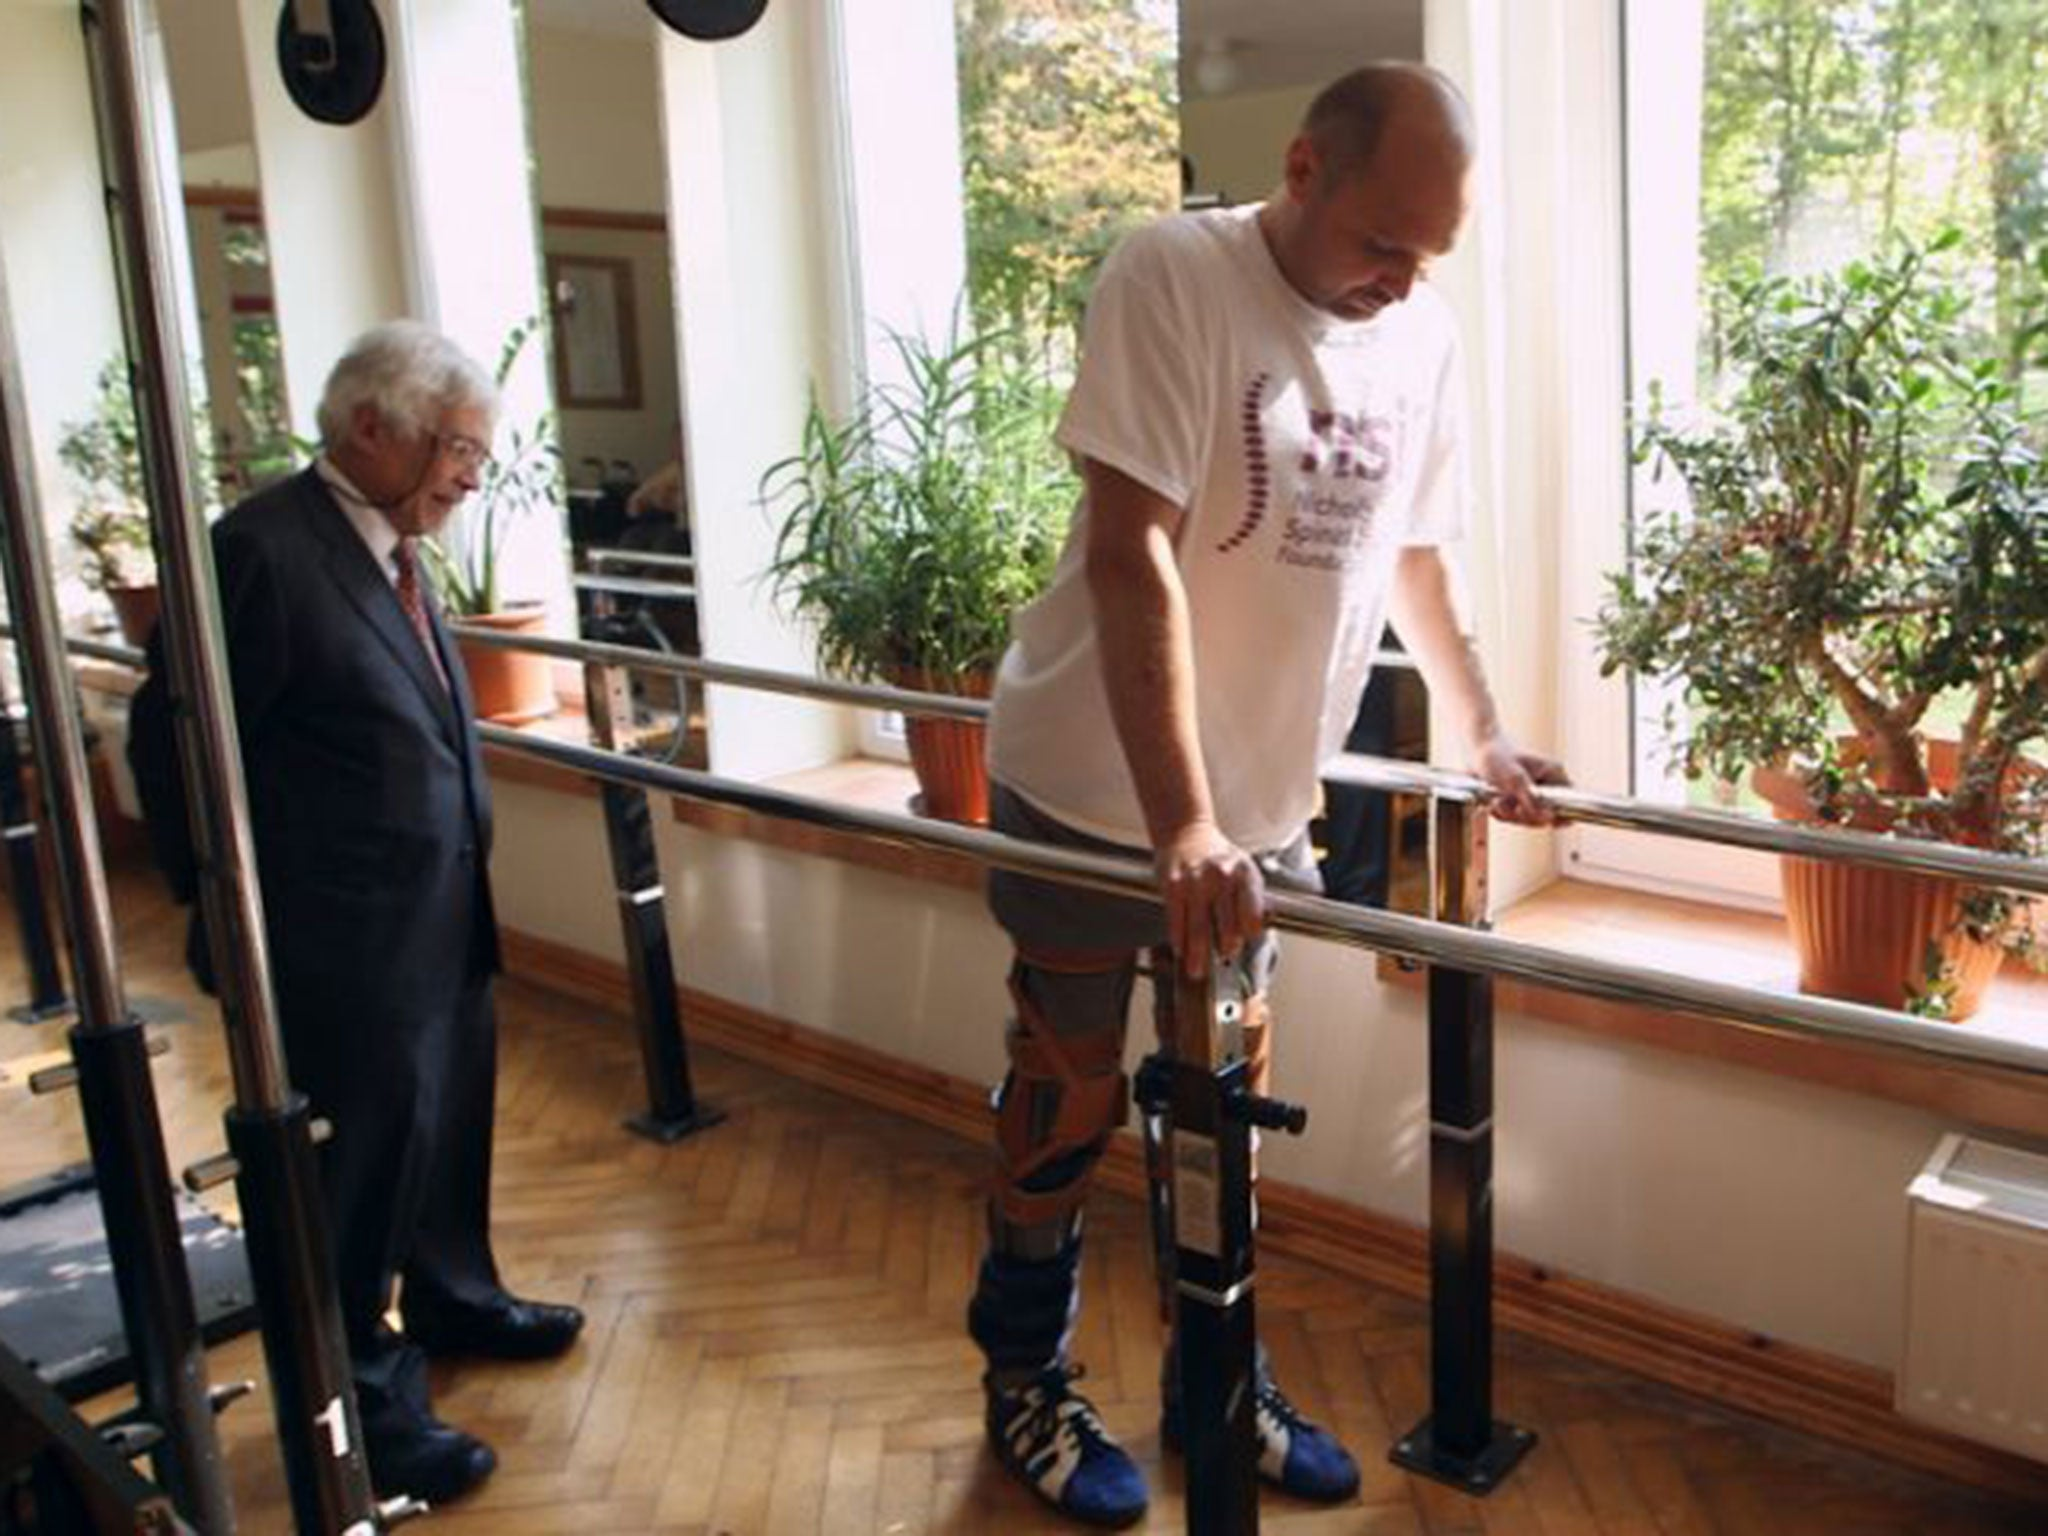 Paralysed man Darek Fidyka walks again after treatment by British doctors on brink of 'cure' for paralysis